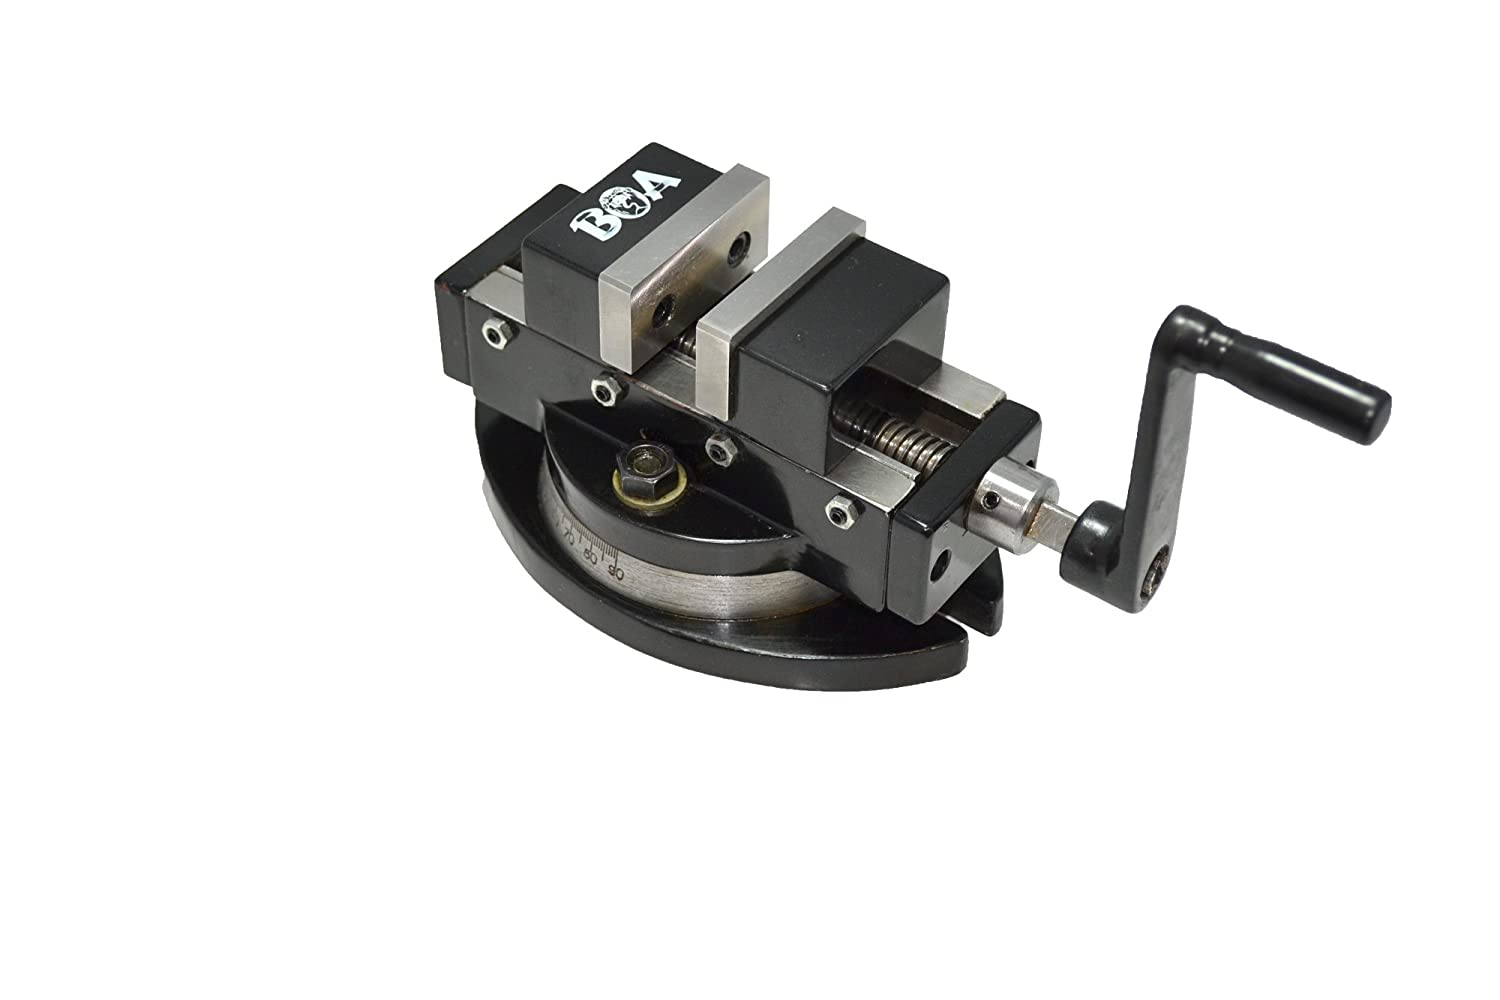 Image of Bench Vises Boa 110080 Precision Self Centering Vise with Swivel Base, 2 x 2